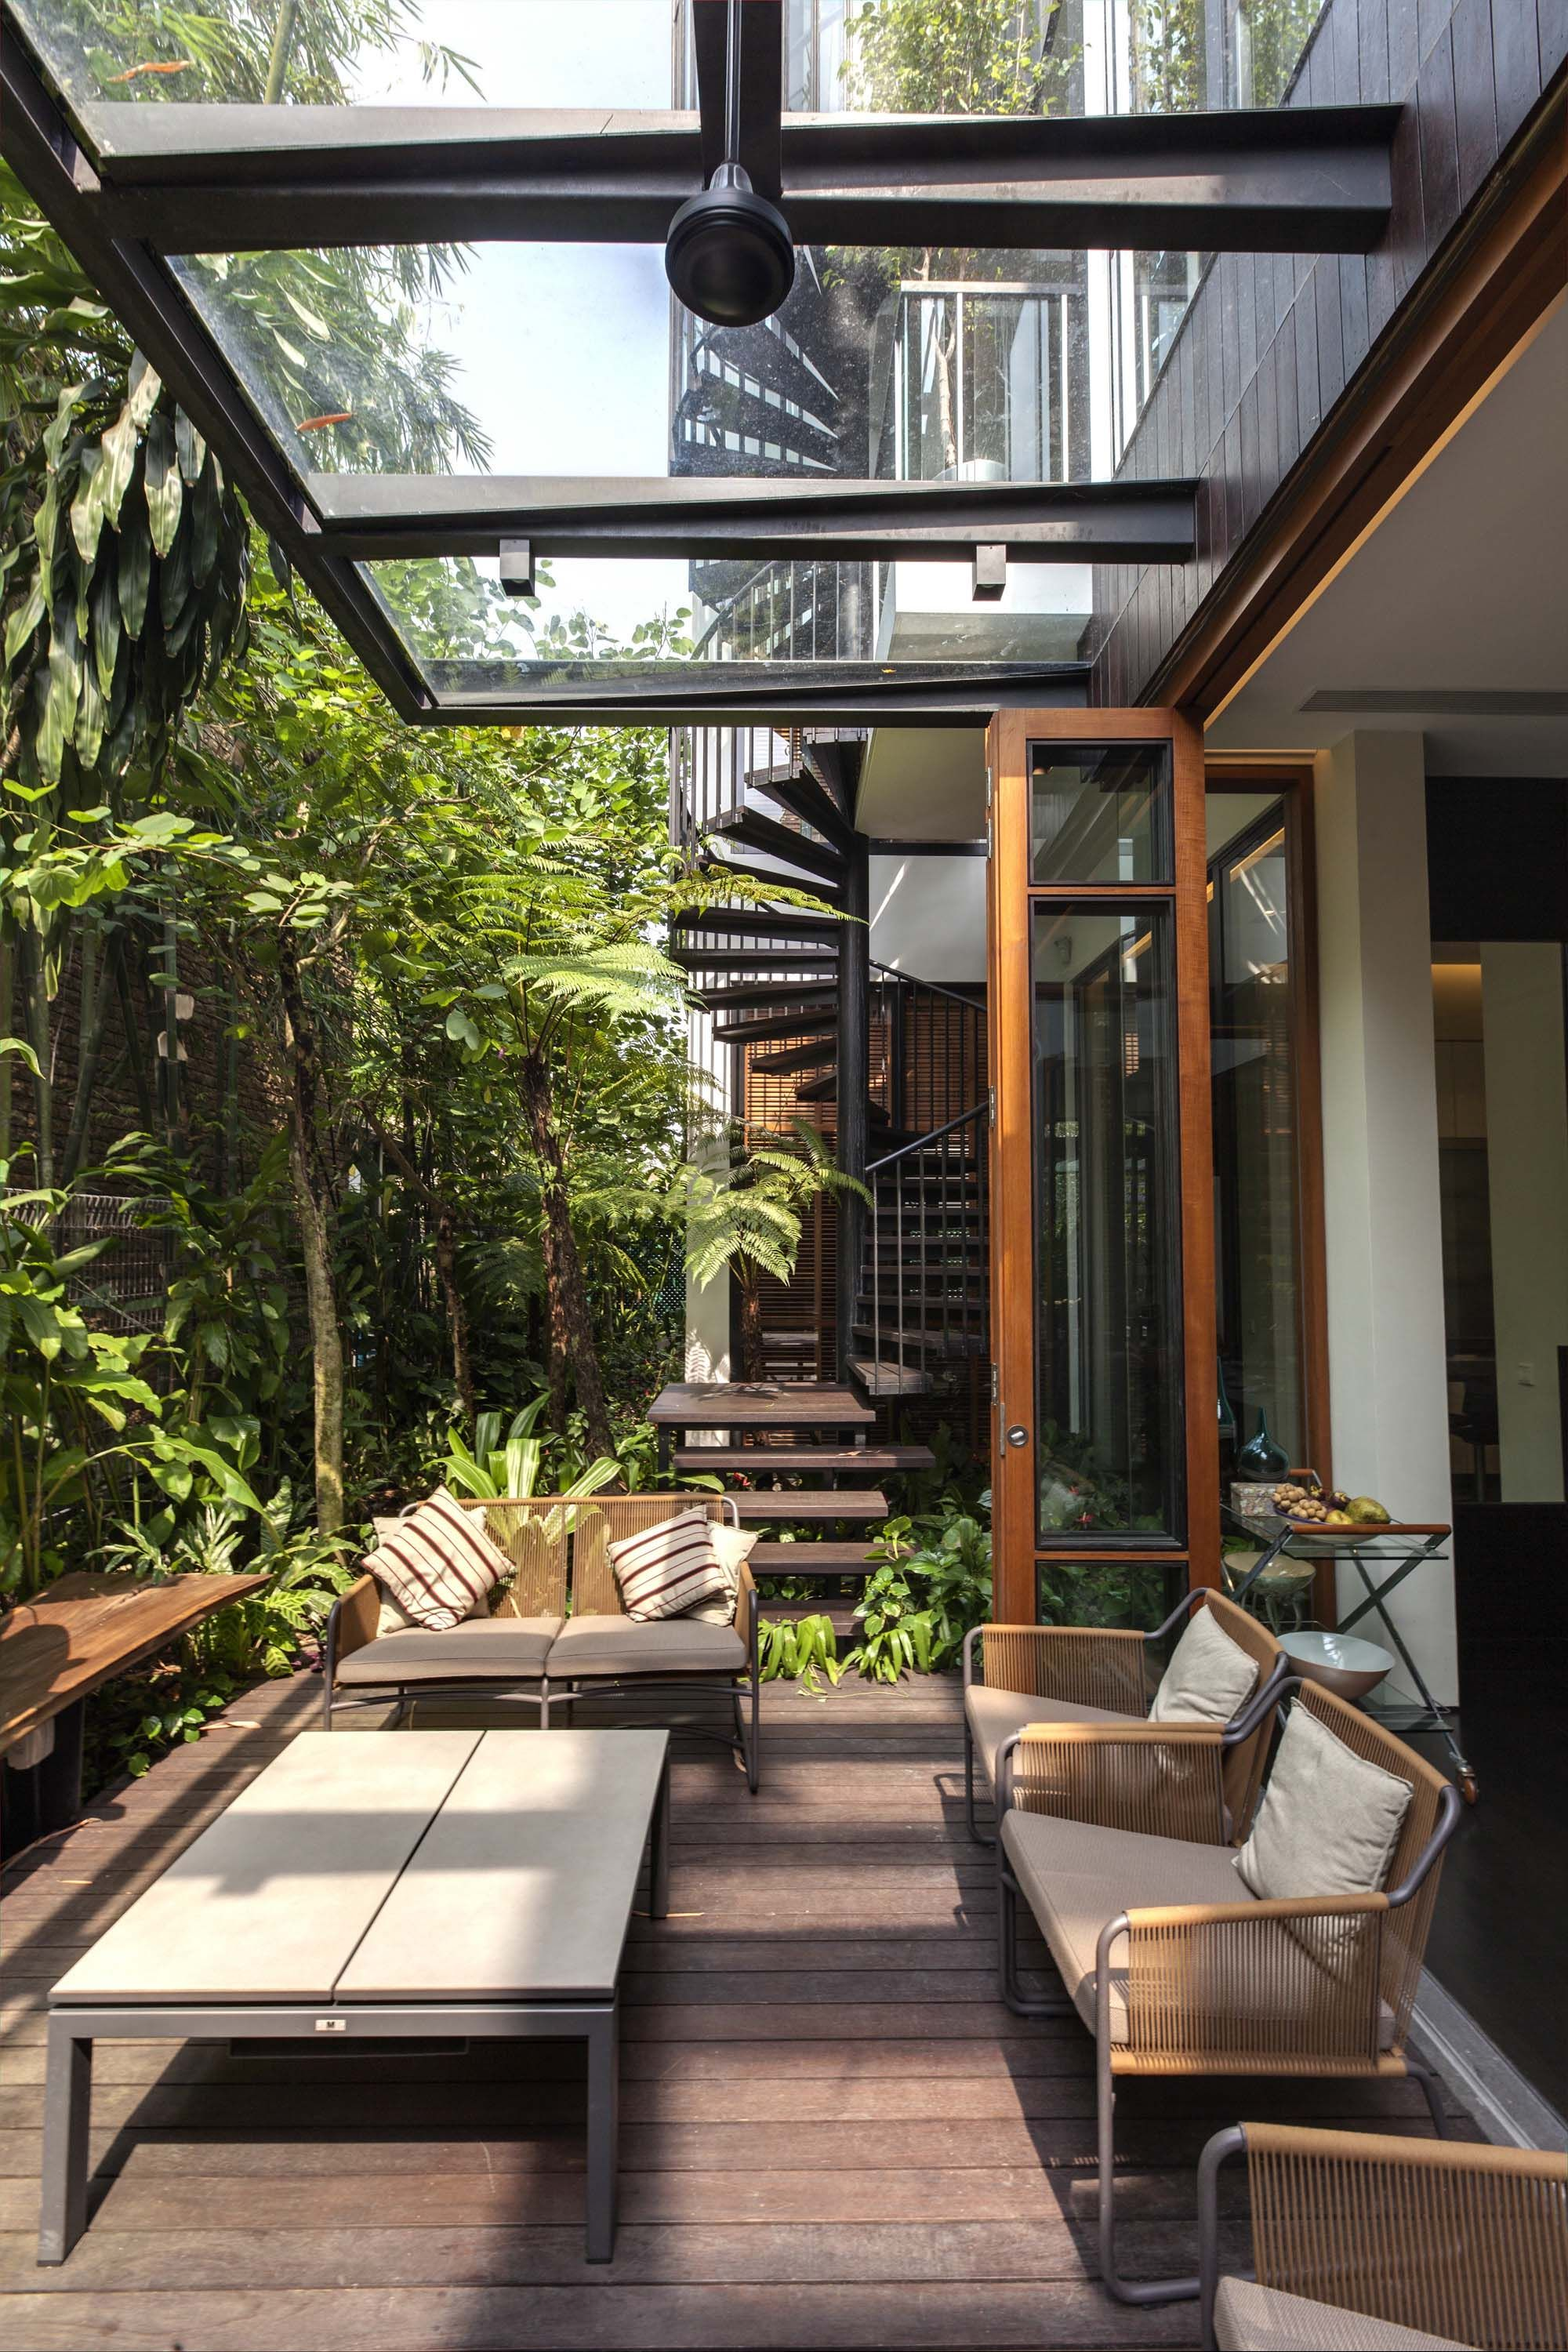 35 modern outdoor patio designs that will blow your mind outdoor 35 modern outdoor patio designs that will blow your mind eventelaan Gallery